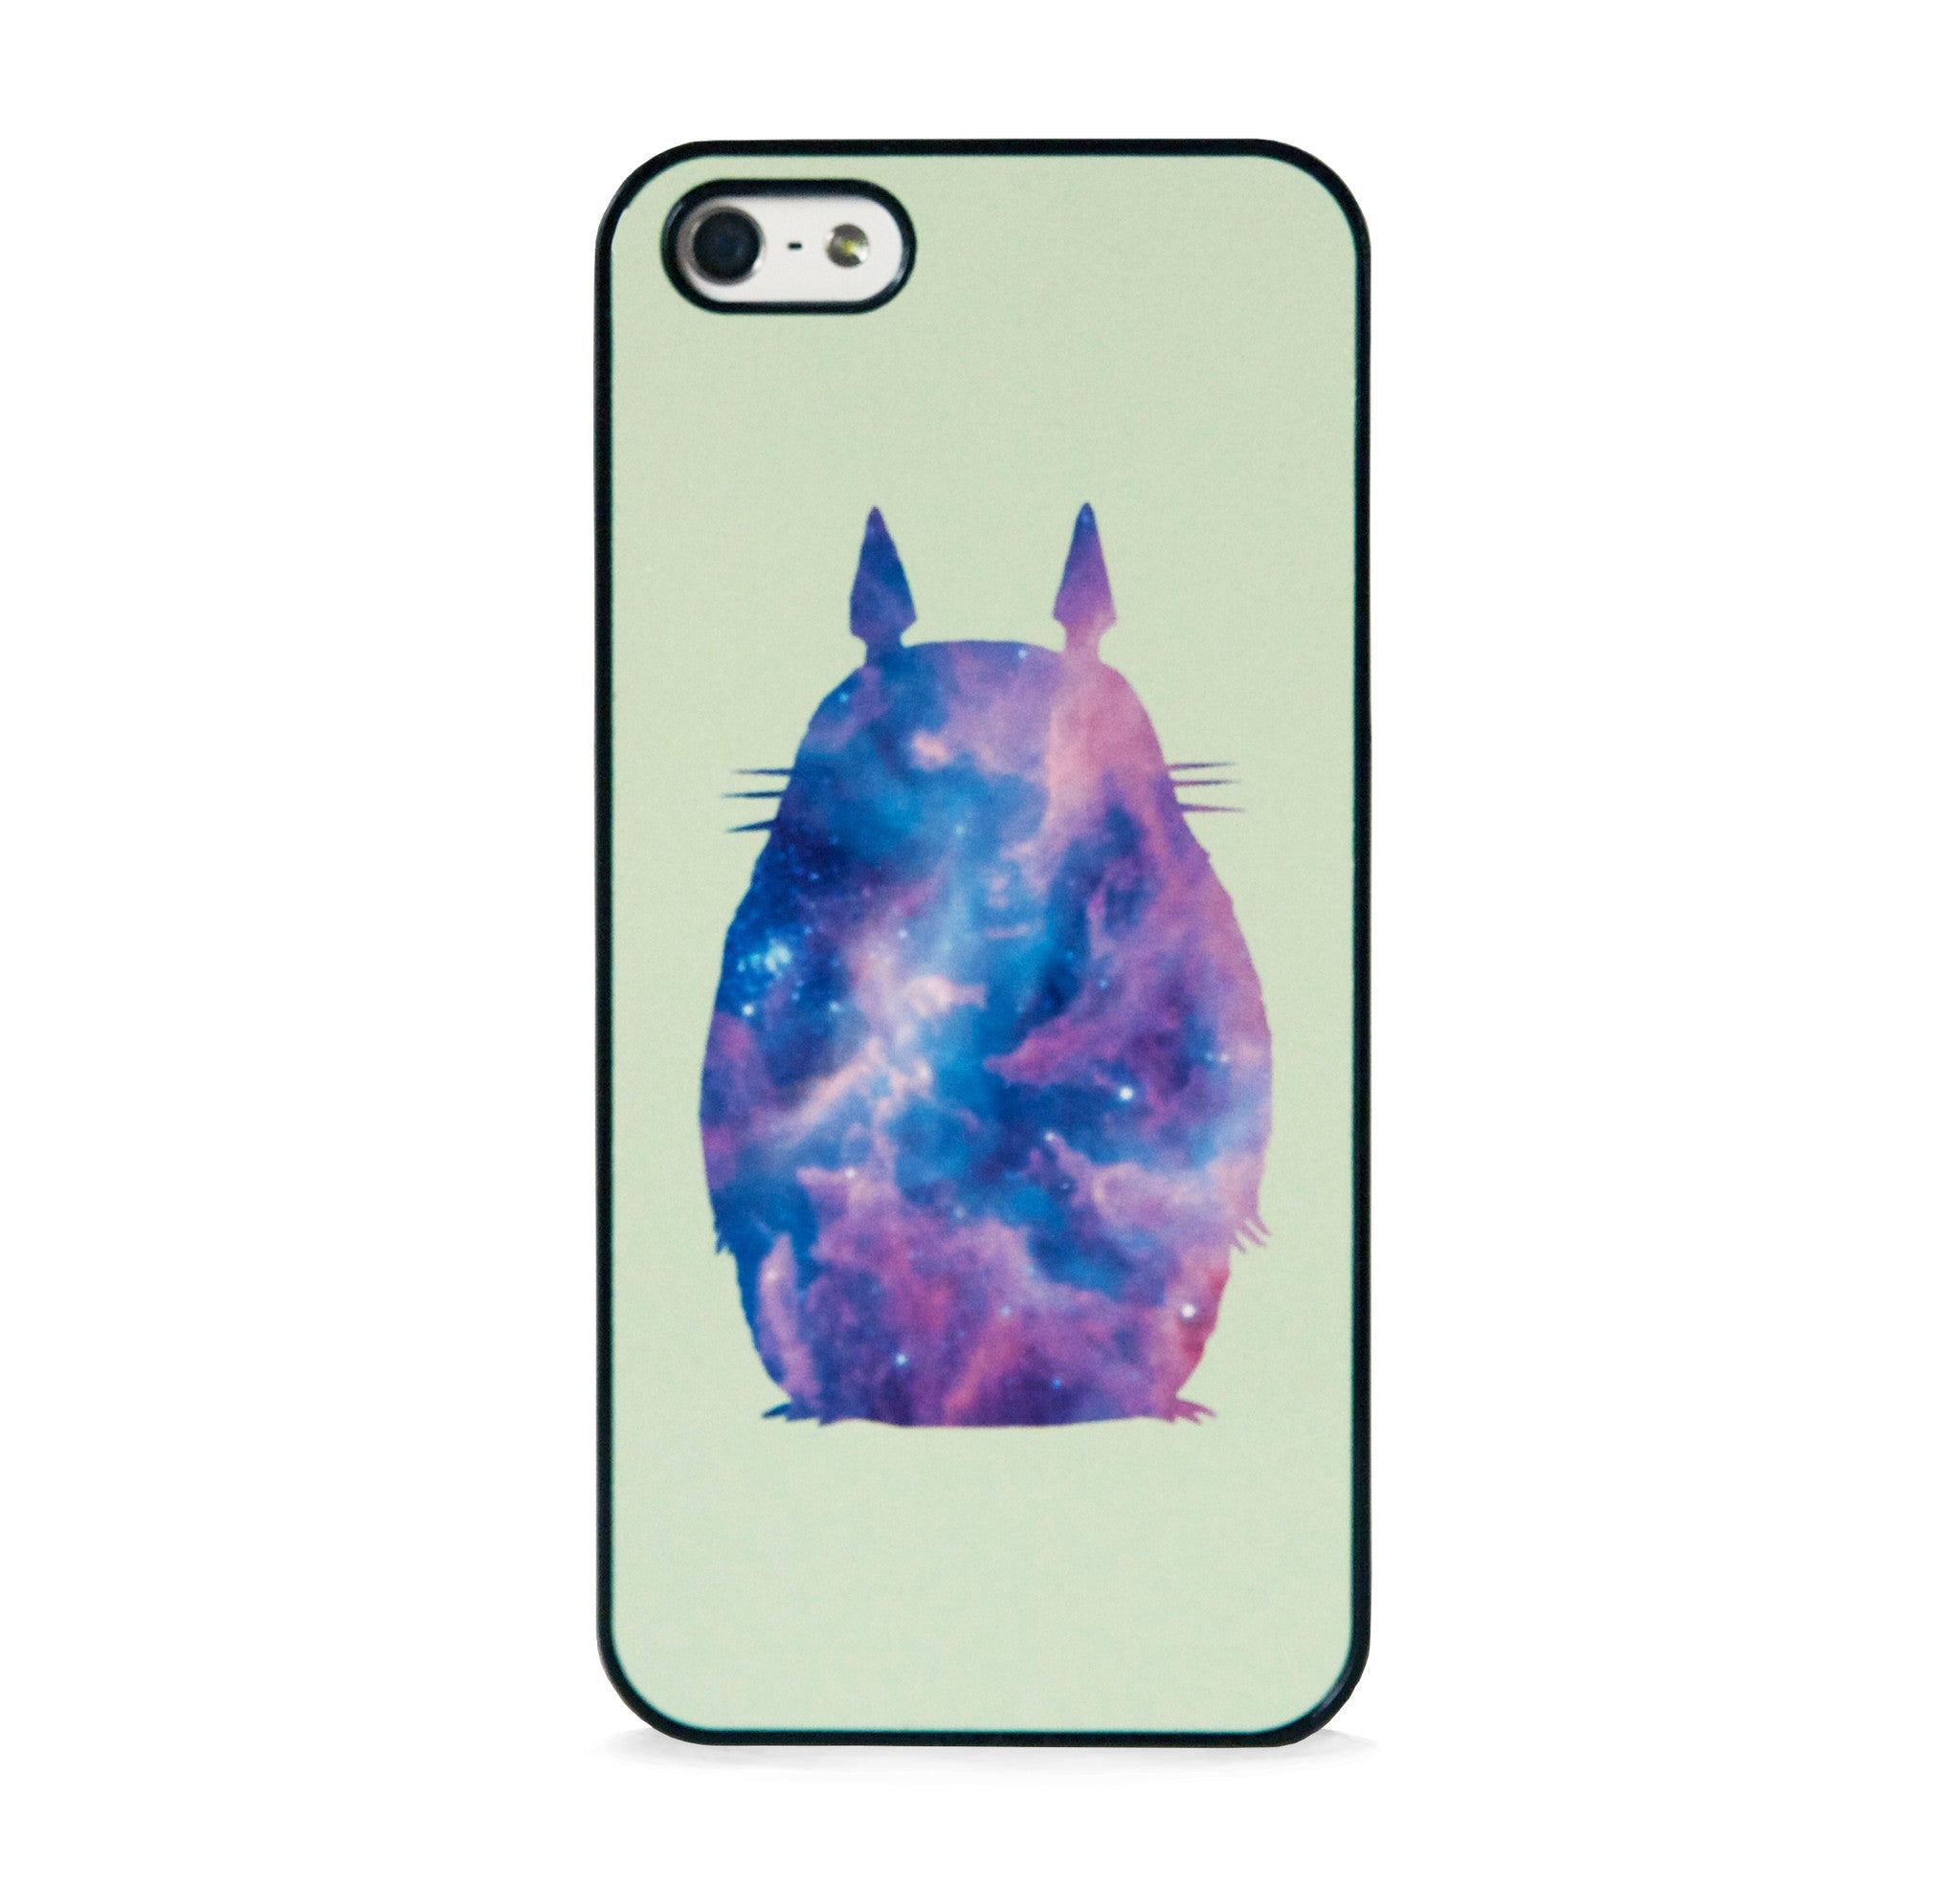 TOTORO GREEN SPACE IPHONE 5/5S CASE